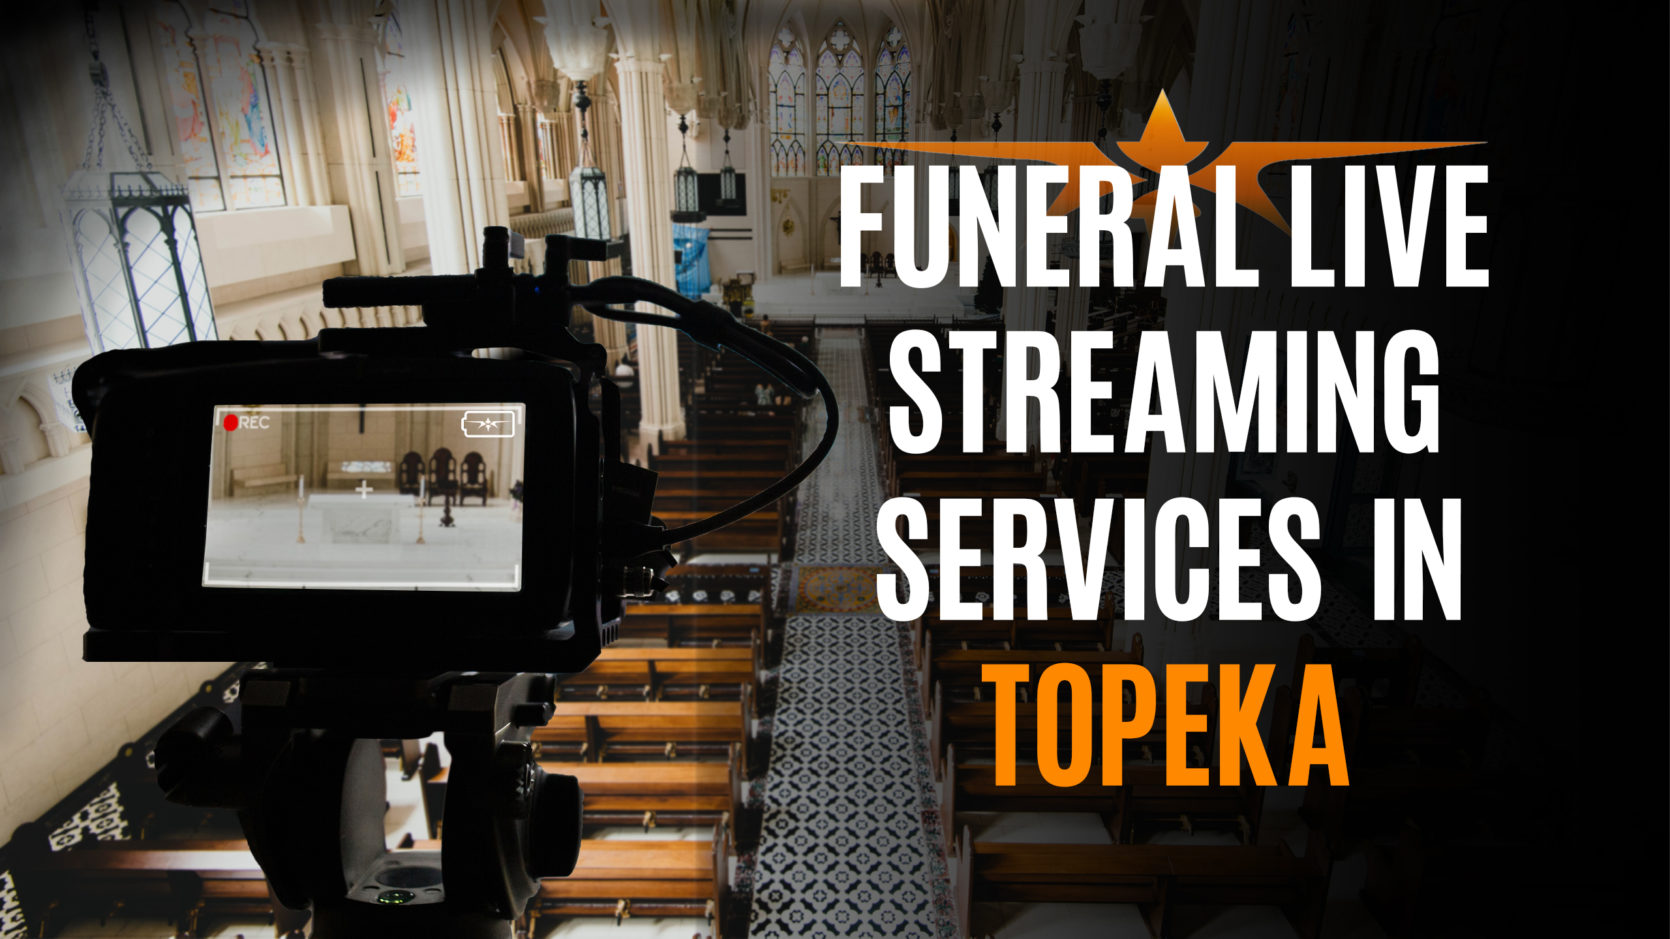 Funeral Live Streaming Services in Topeka